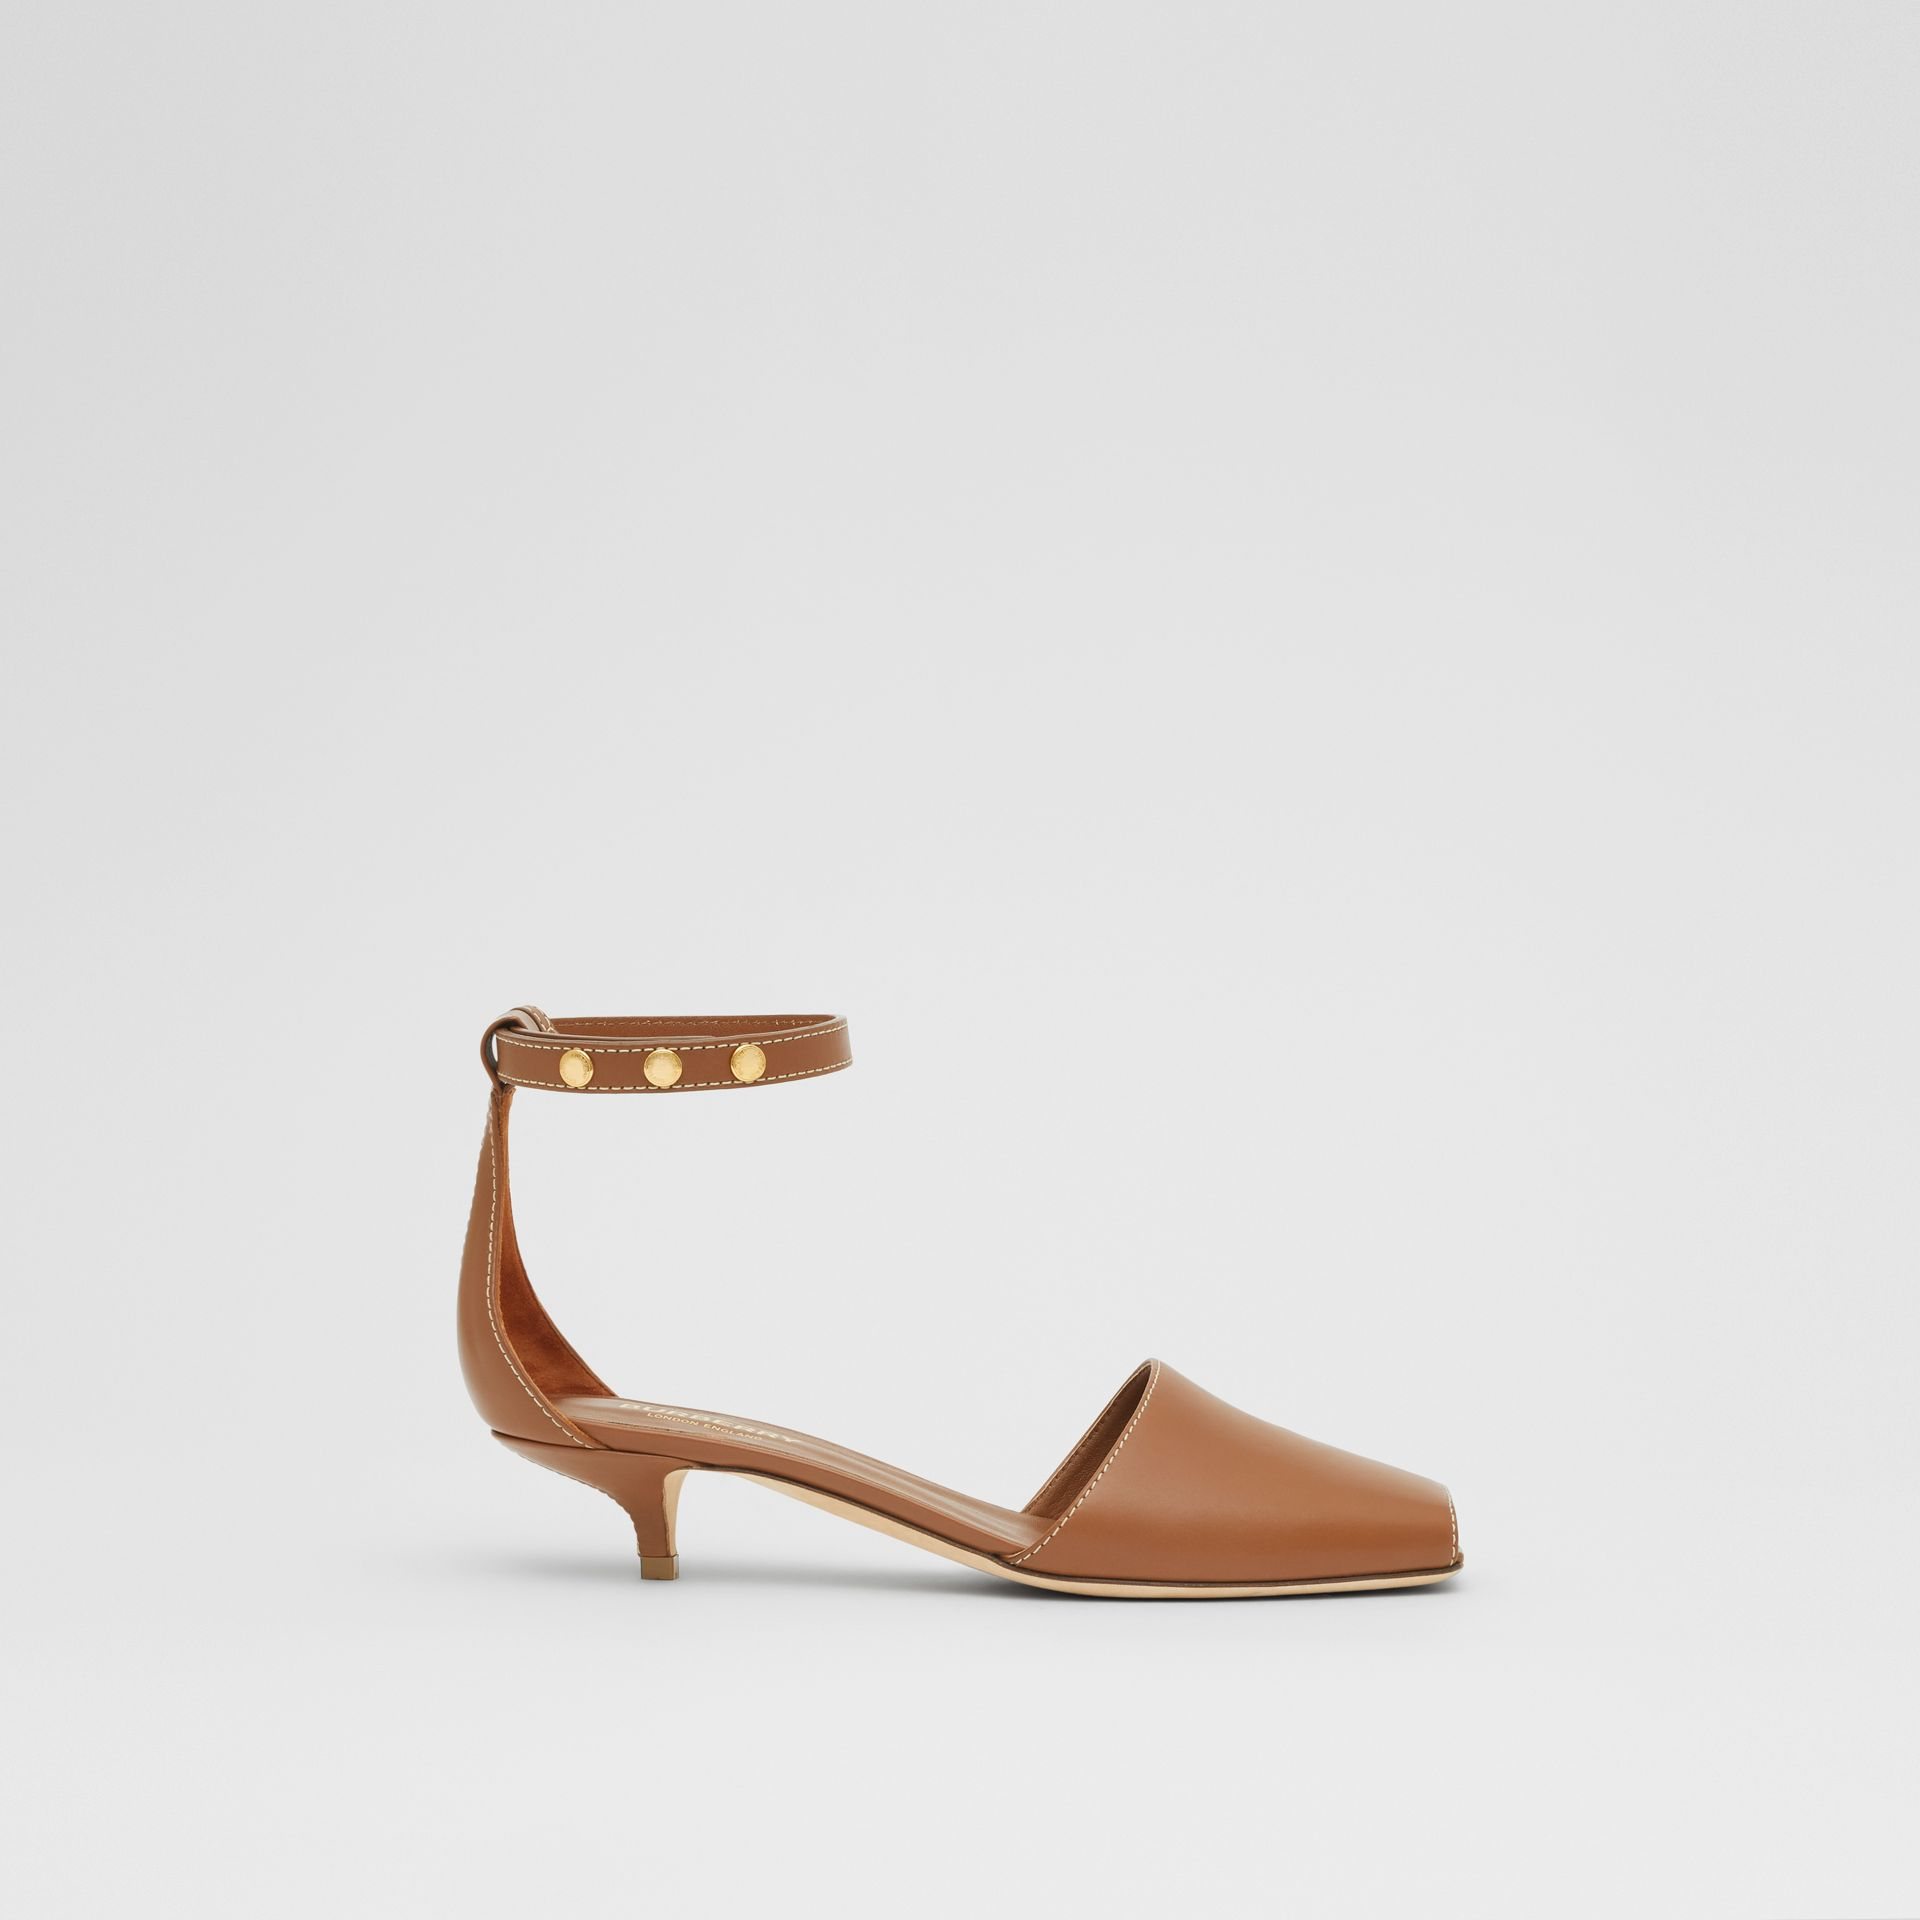 Triple Stud Leather Kitten-heel Sandals in Tan - Women | Burberry - gallery image 5